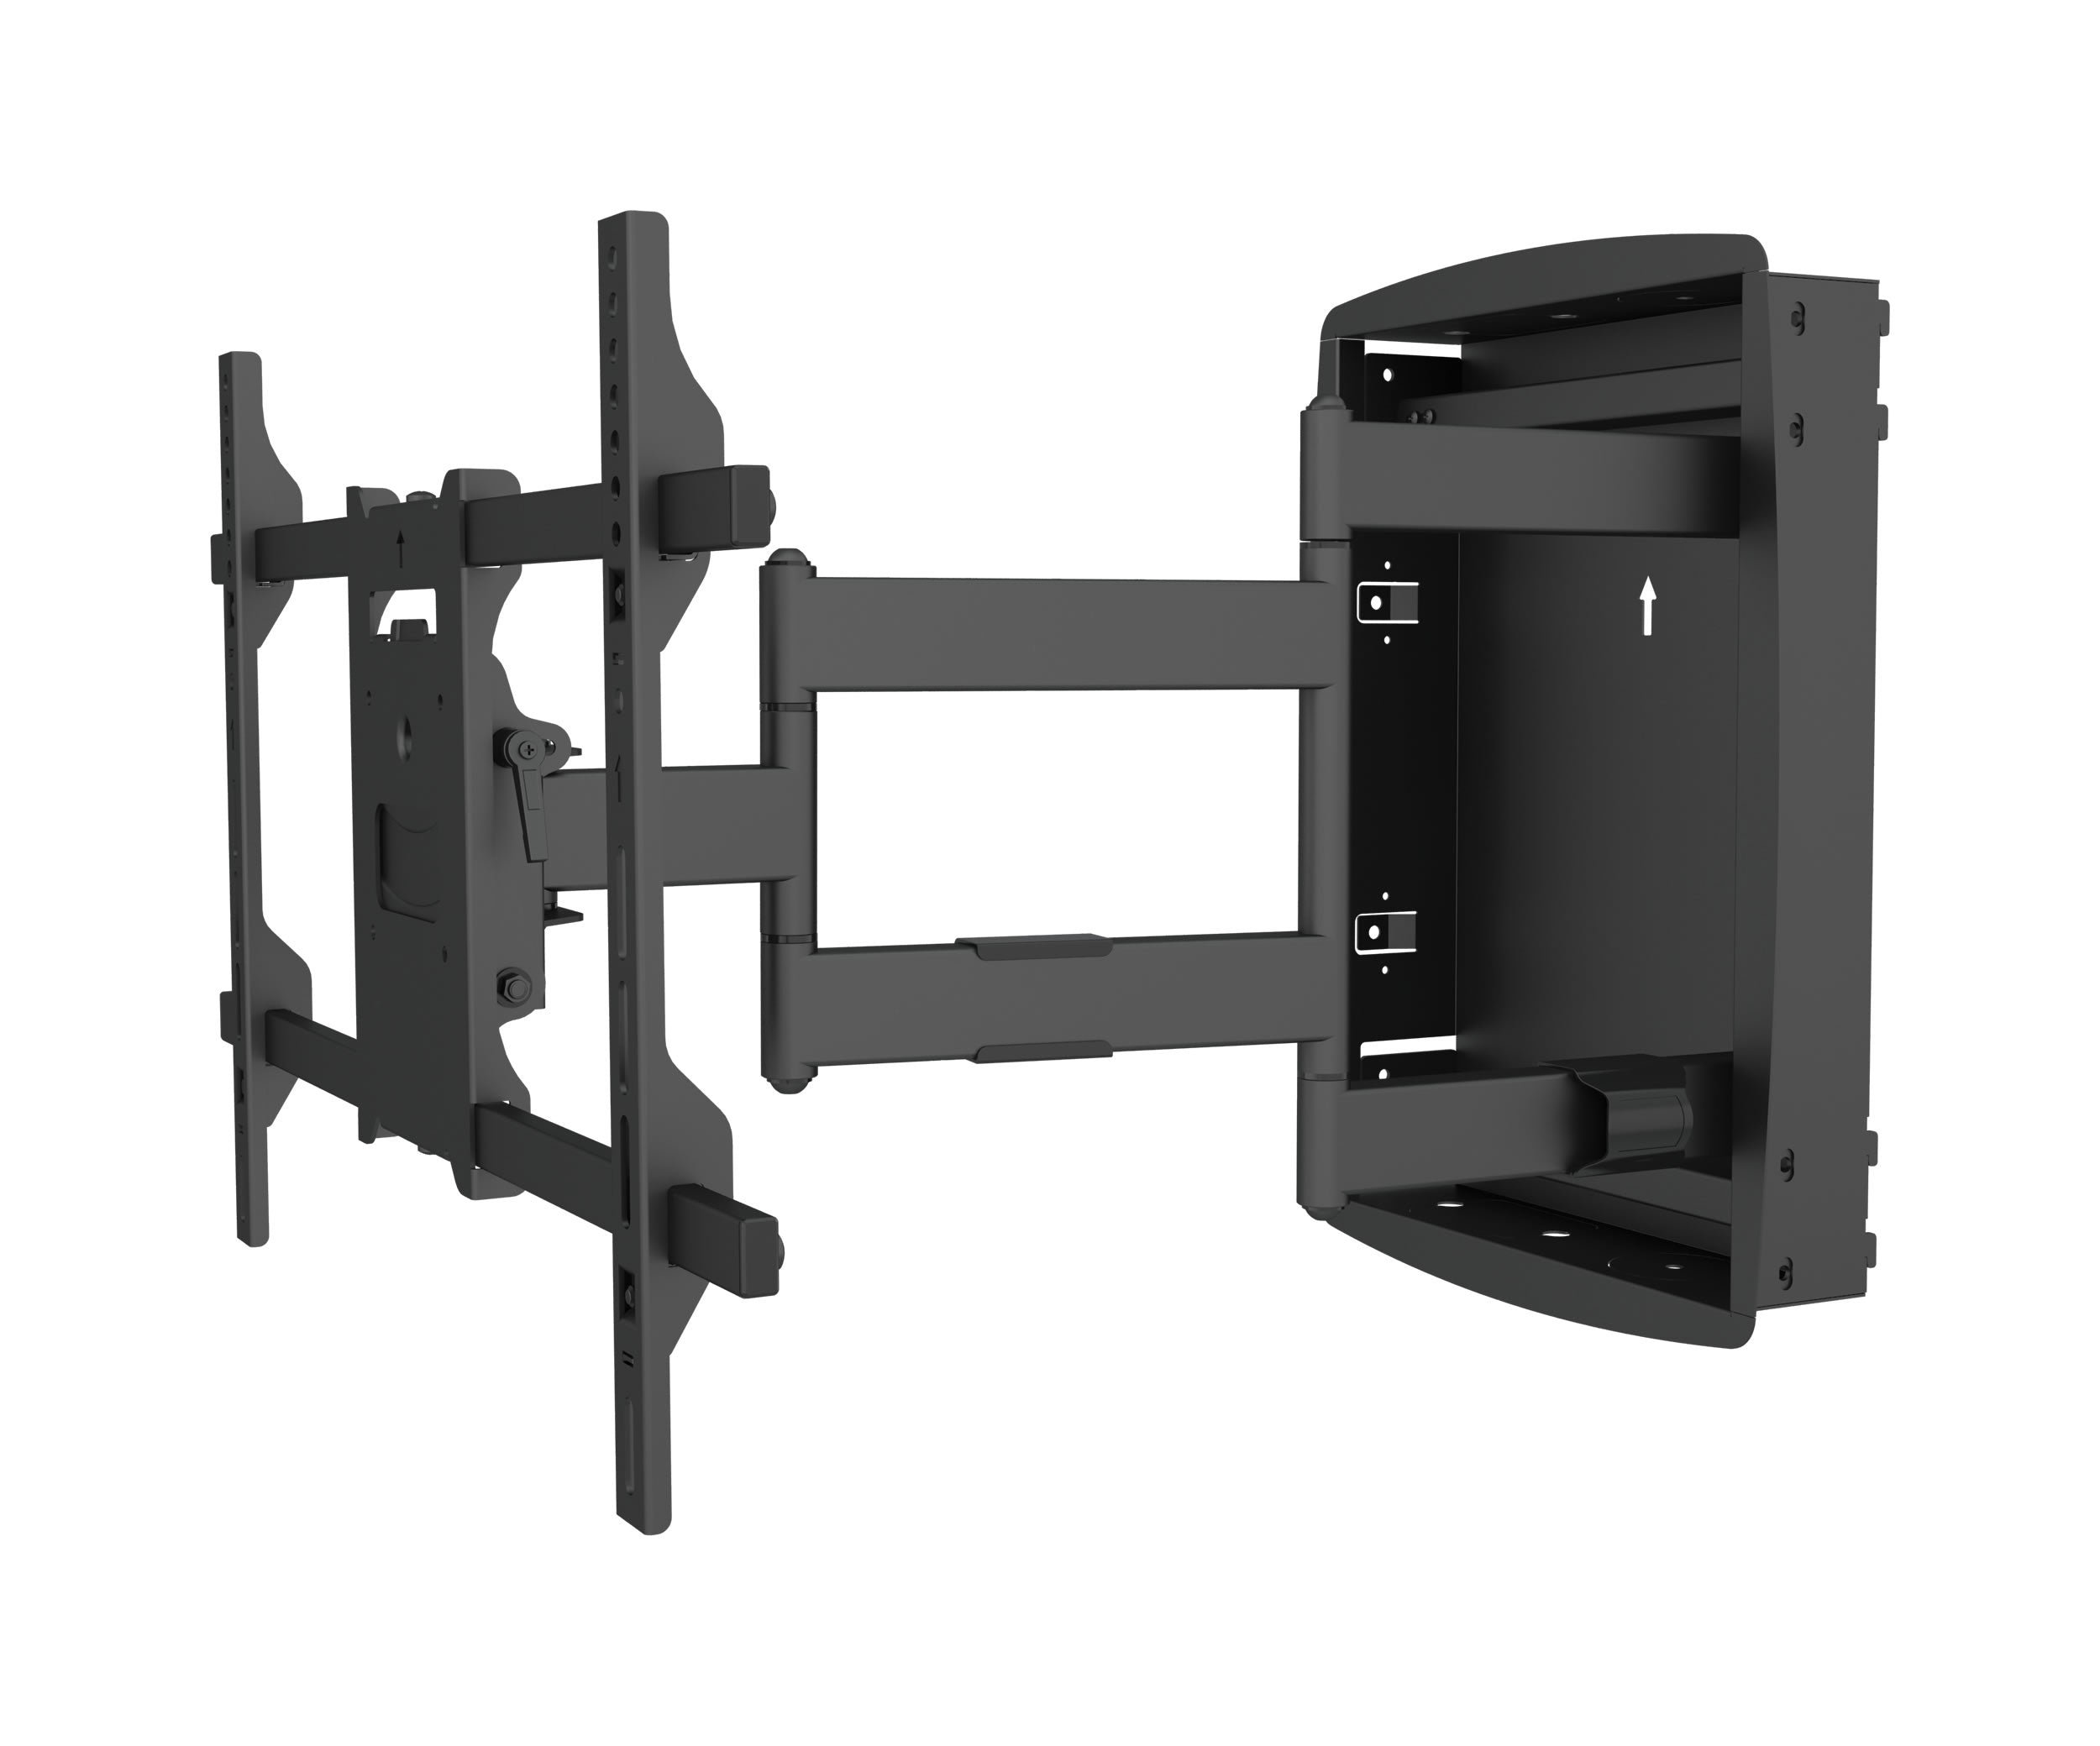 Full motion In-Wall Flat LCD LED TV / Panels Wood Stud Mount Bracket for 32-70 inches Screens